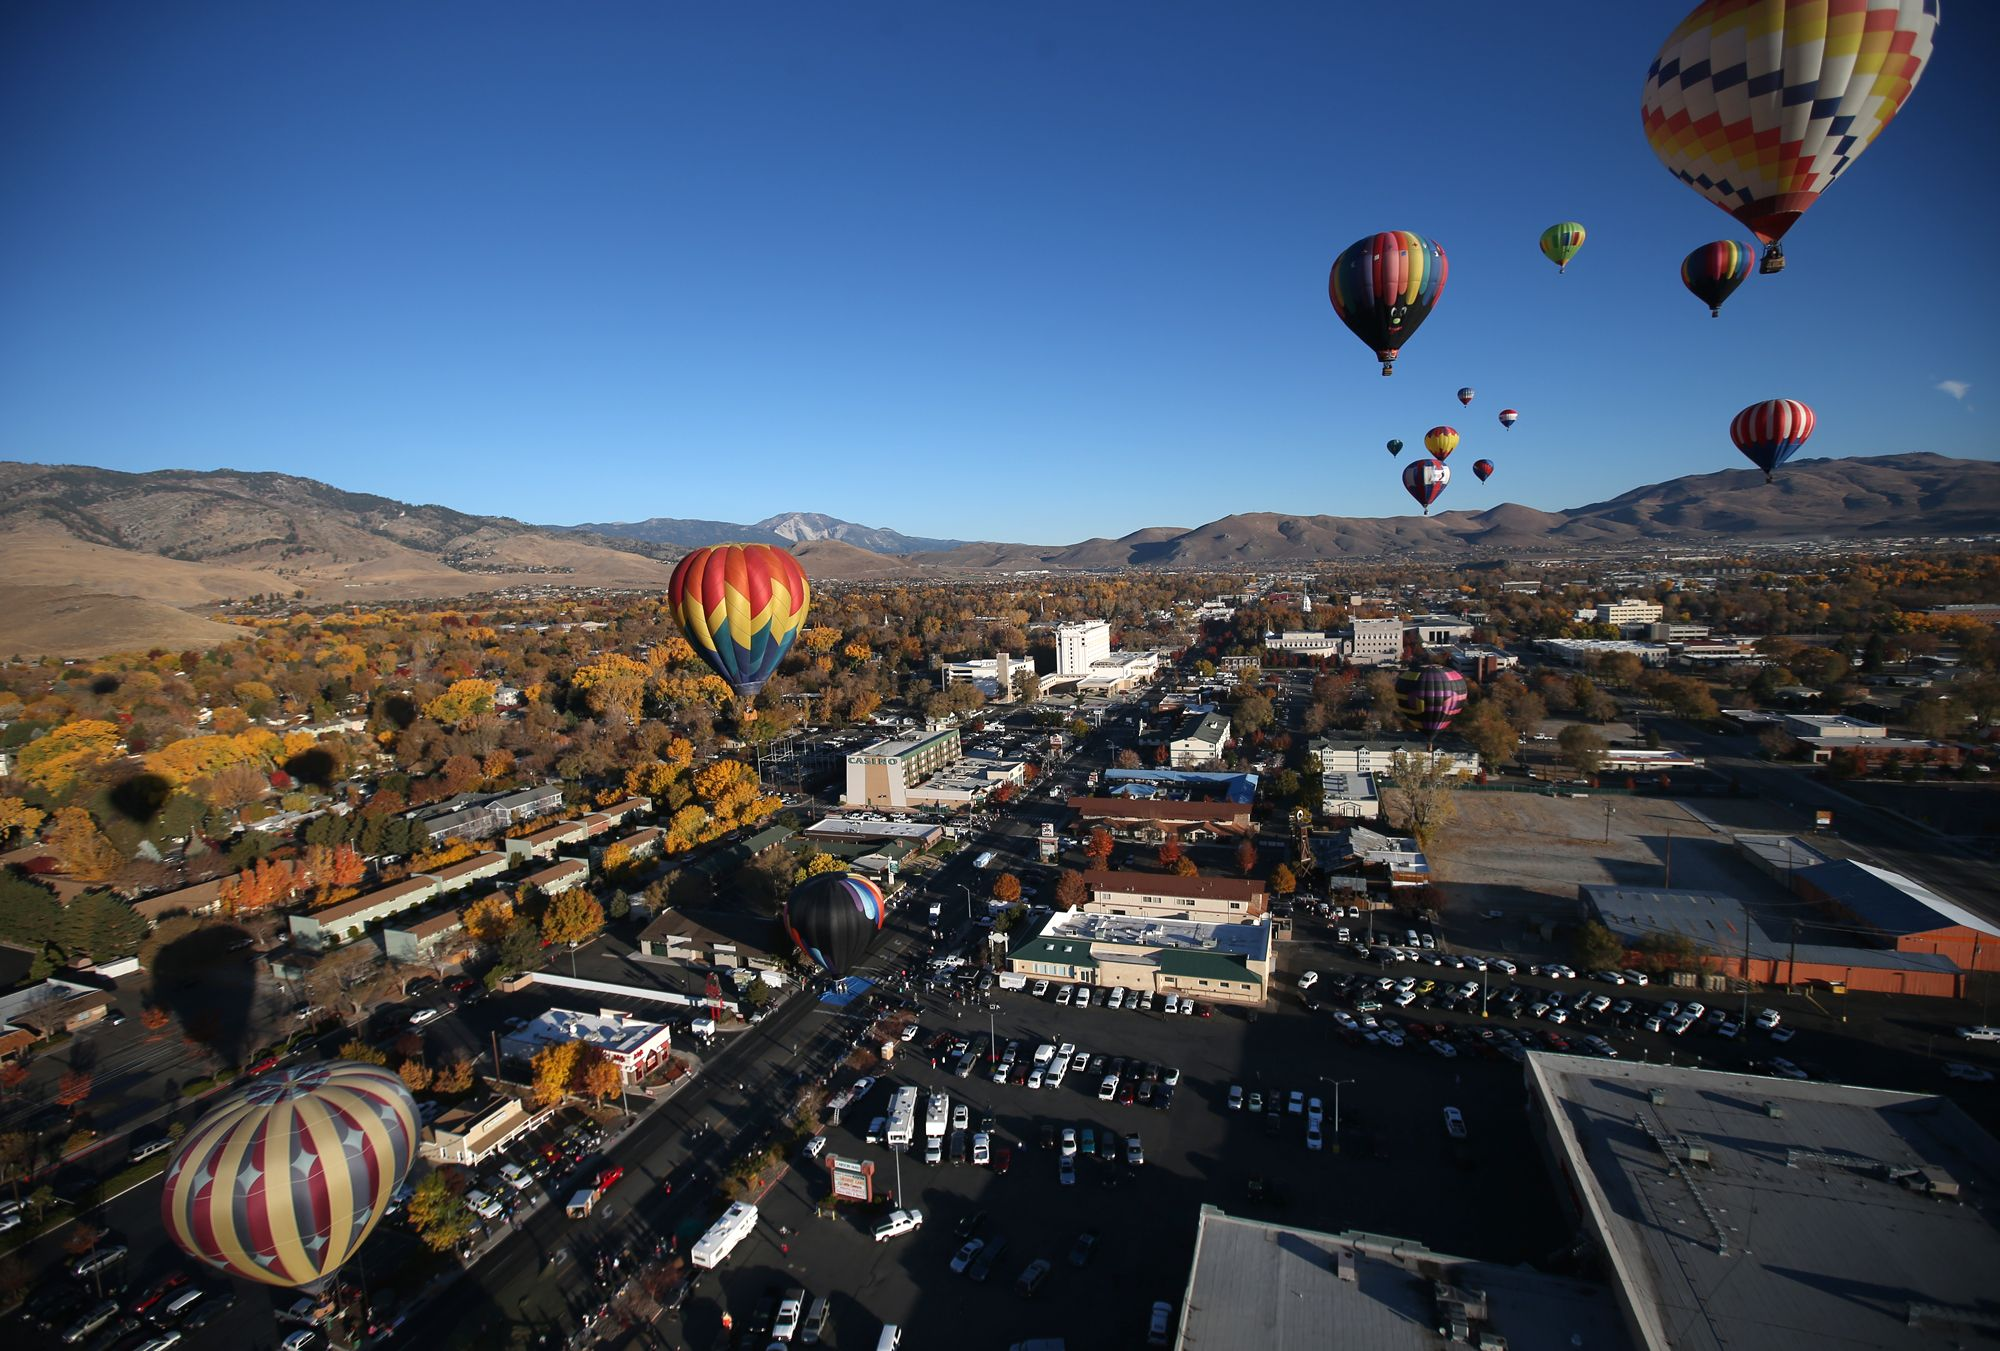 Balloons over carson city carson city state capitals